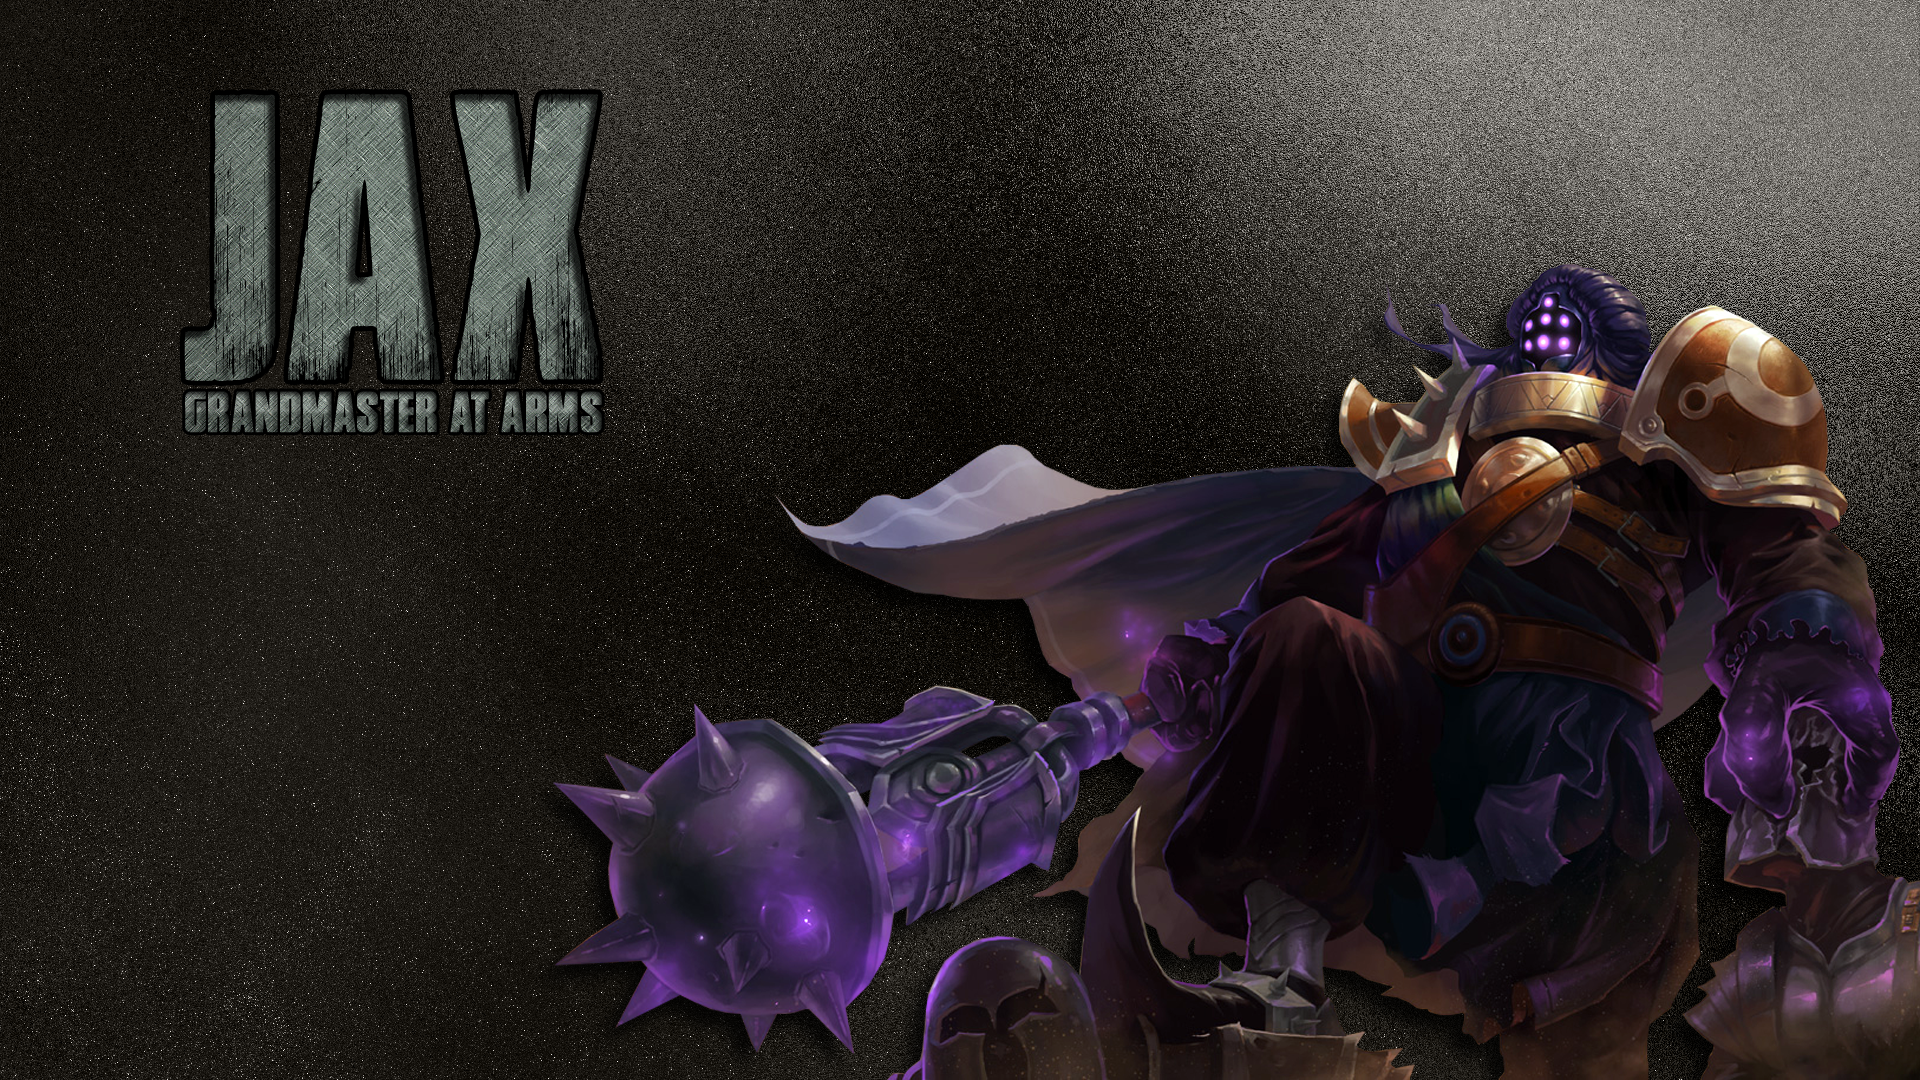 Jax Wallpaper